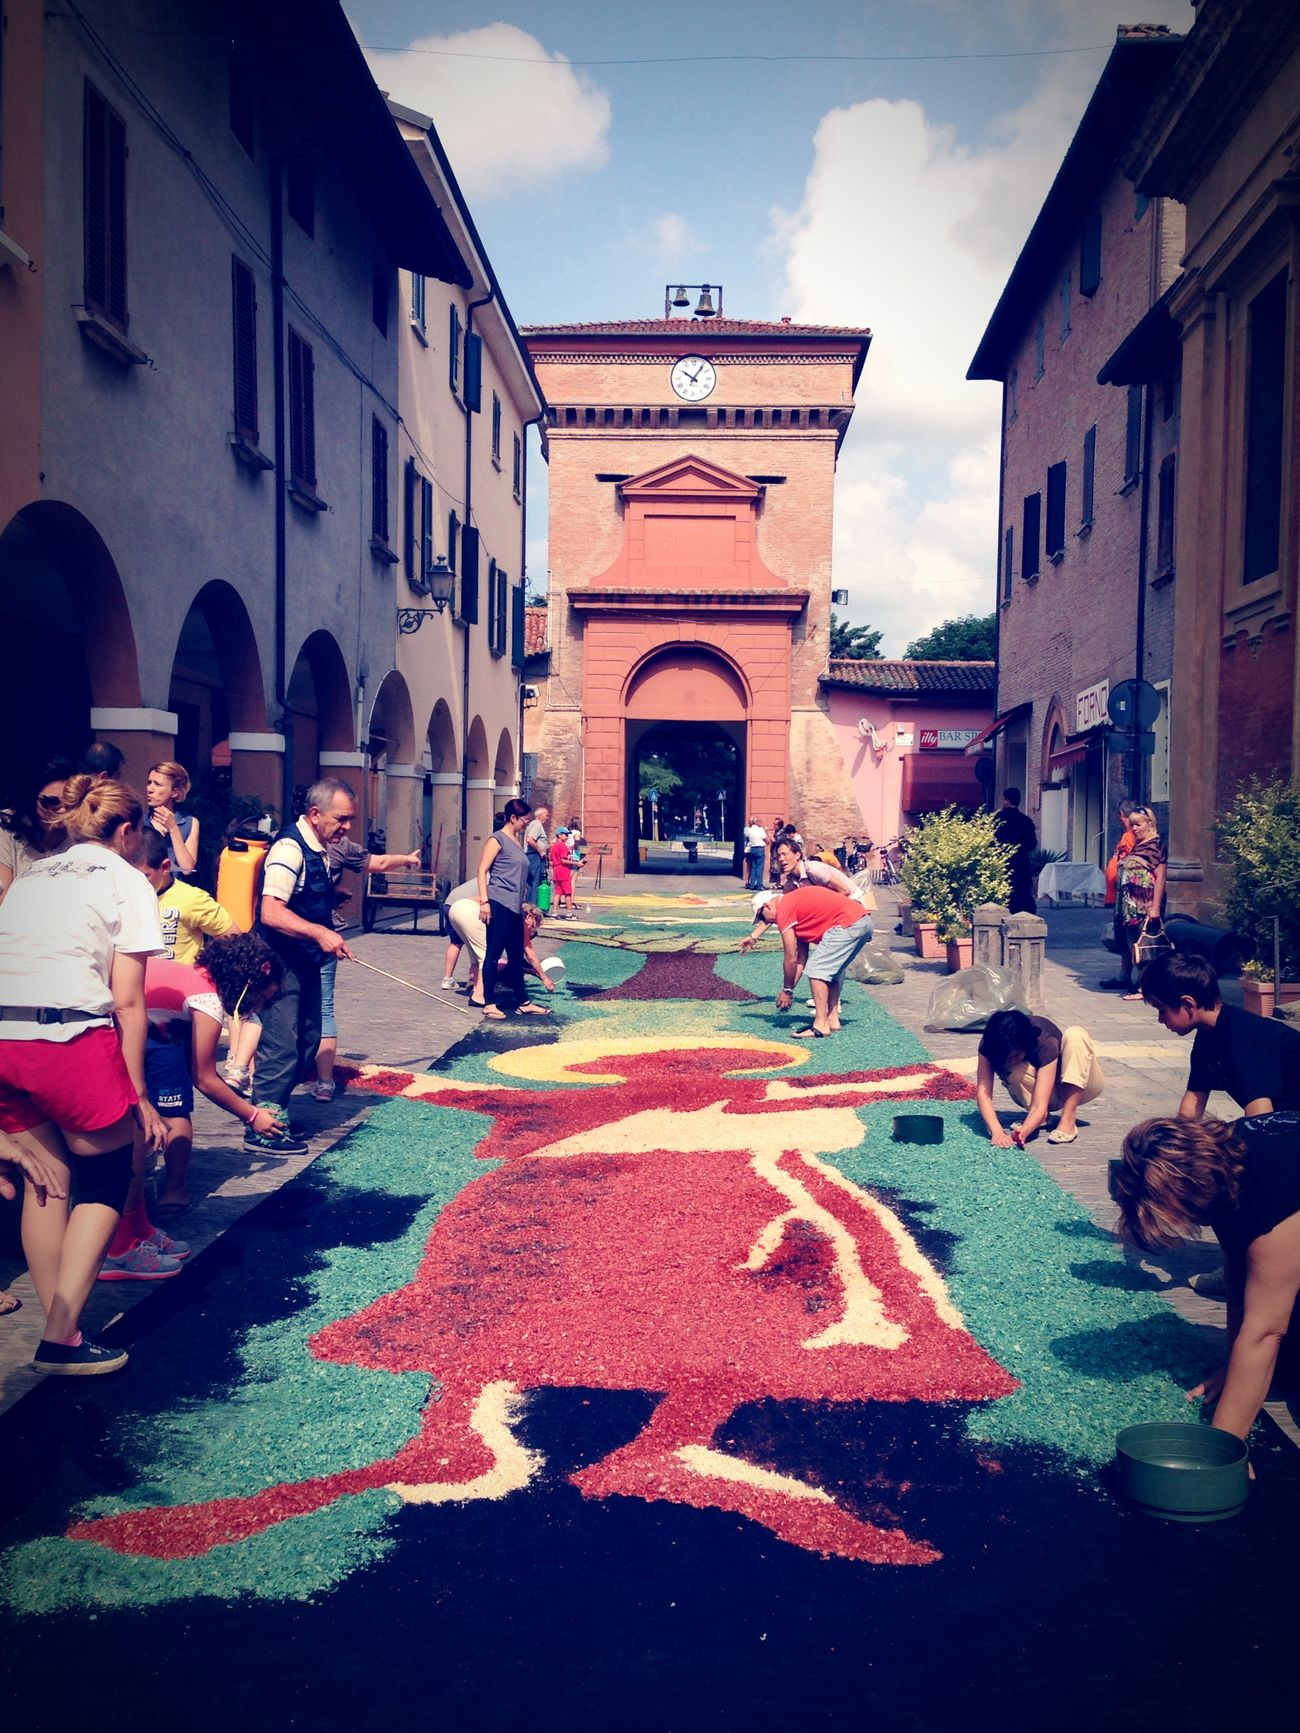 Infiorata2014 Castelguelfo Parrocchia Infiorata Taking Photos Enjoying Life Street Life Living Life